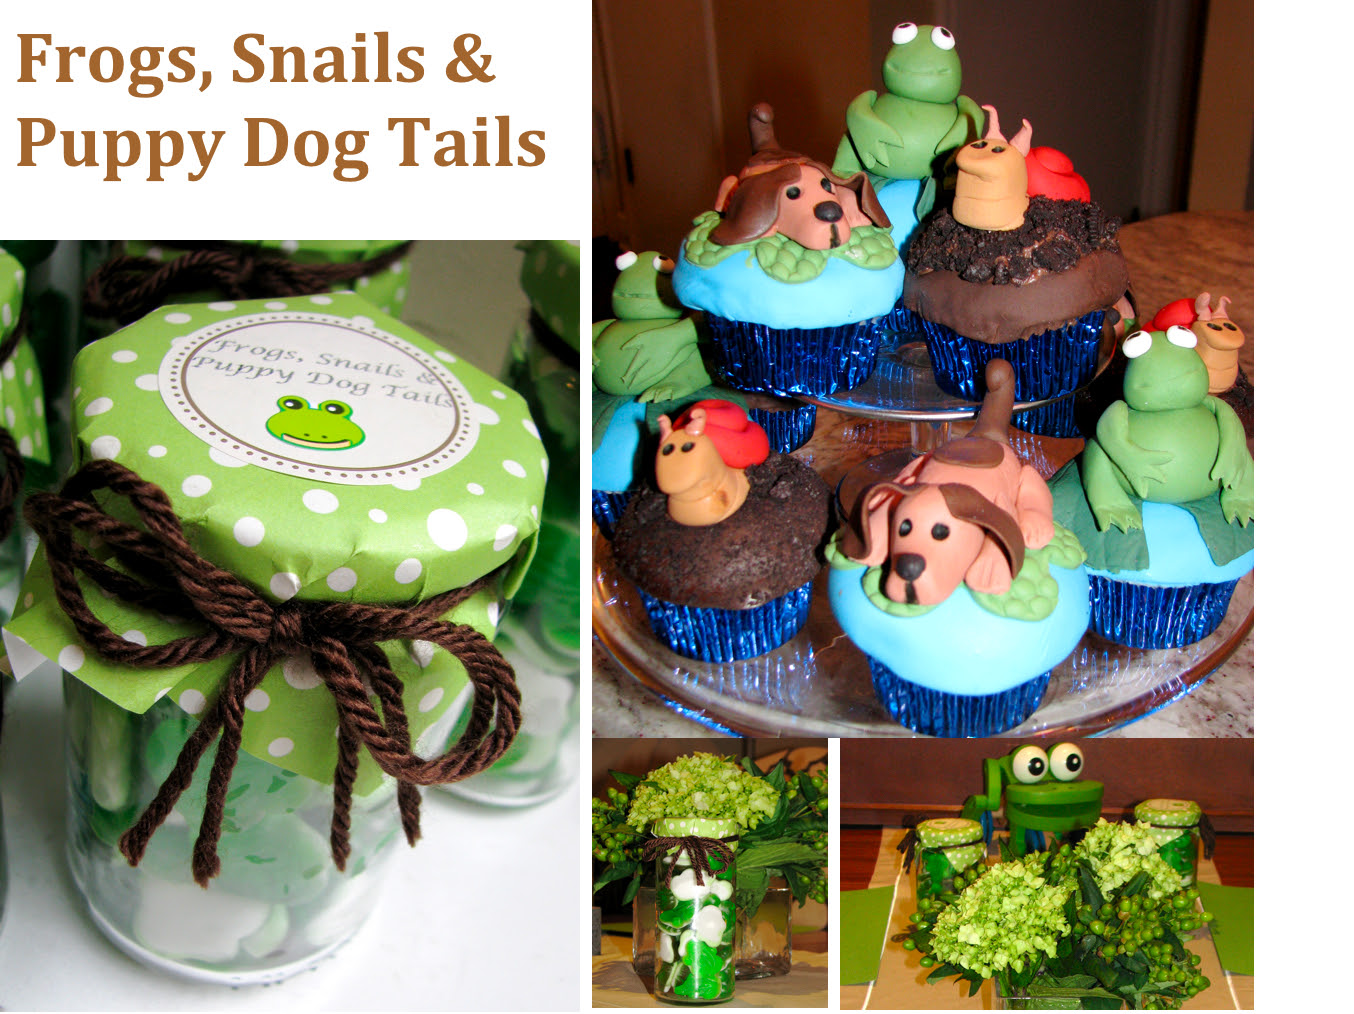 Its A Boy Frogs Snails Puppy Dog Tails Baby Shower Stylish Spoon